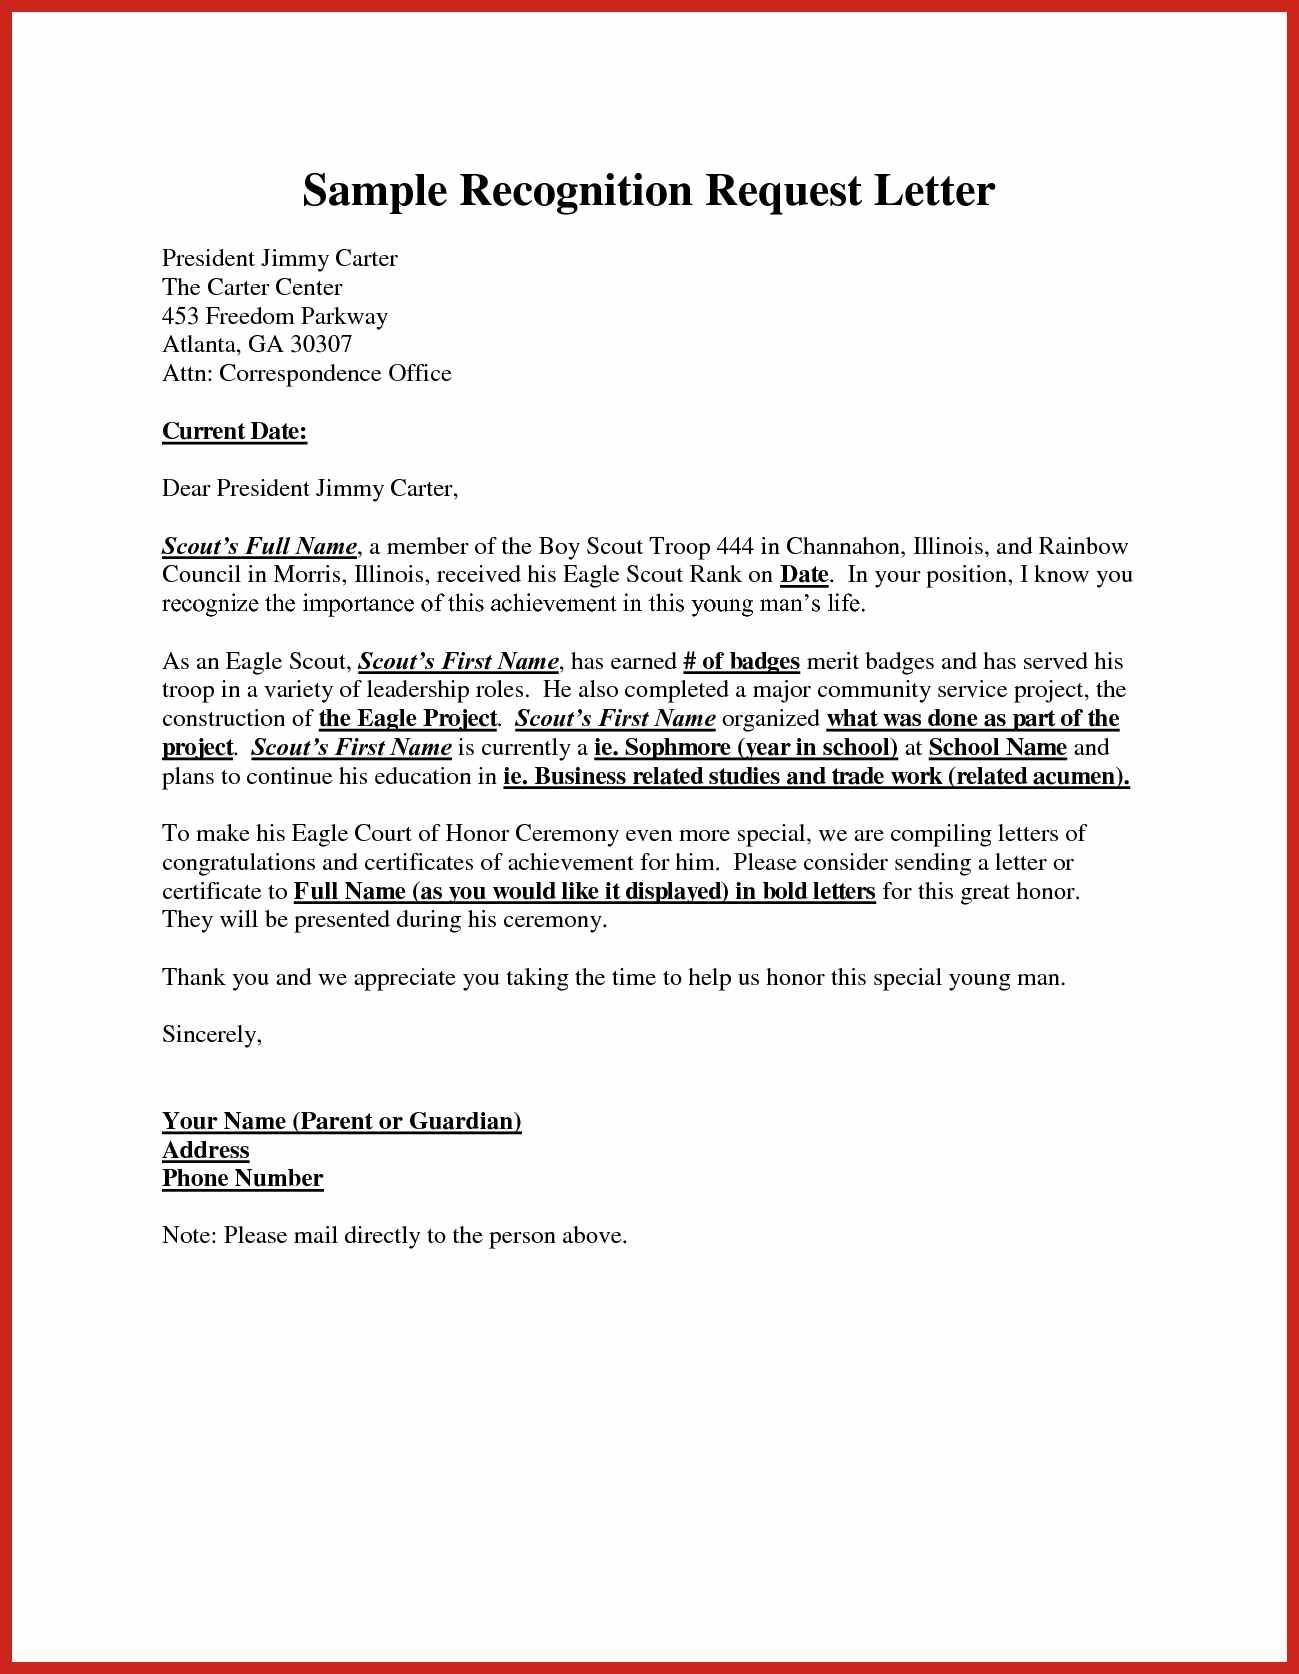 Eagle scout sample letter to request congrats sample letter of eagle scout sample letter to request congrats sample letter of recommendation for eagle scout by altavistaventures Image collections